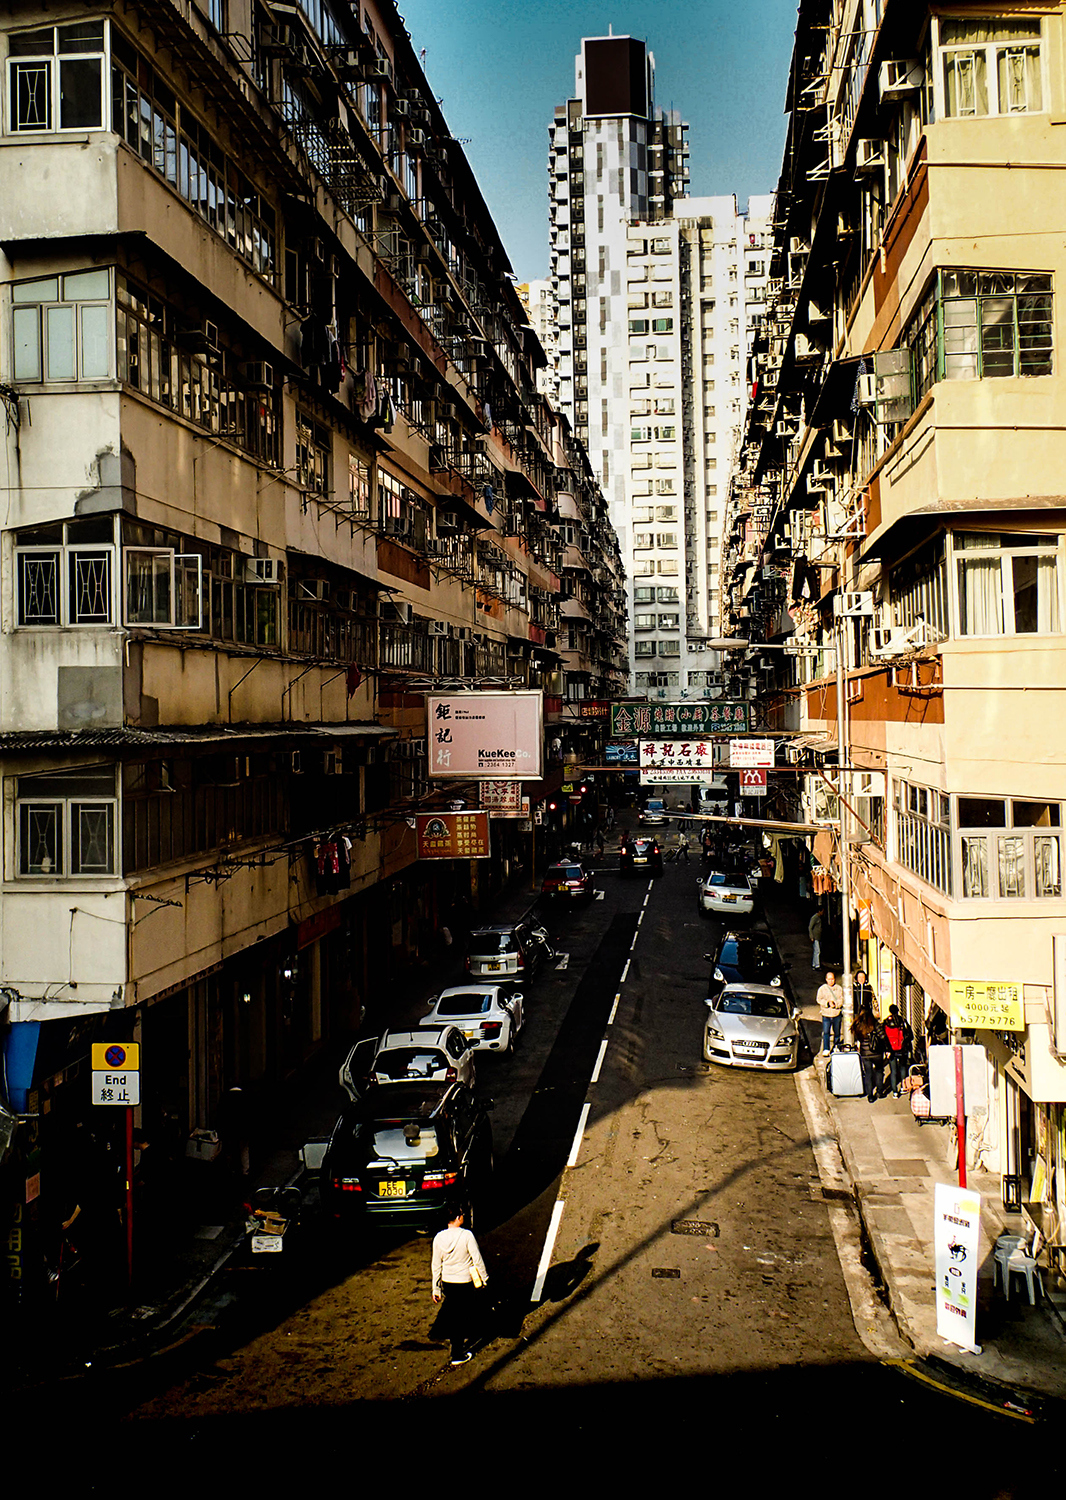 <p>A view down Whampoa Street in the Hung Hom district of Hong Kong. <br /></p> <p>Along the left side of the street there was once a relaxed little restaurant called El Merry where friends and I enjoyed the odd meal.<br /></p>